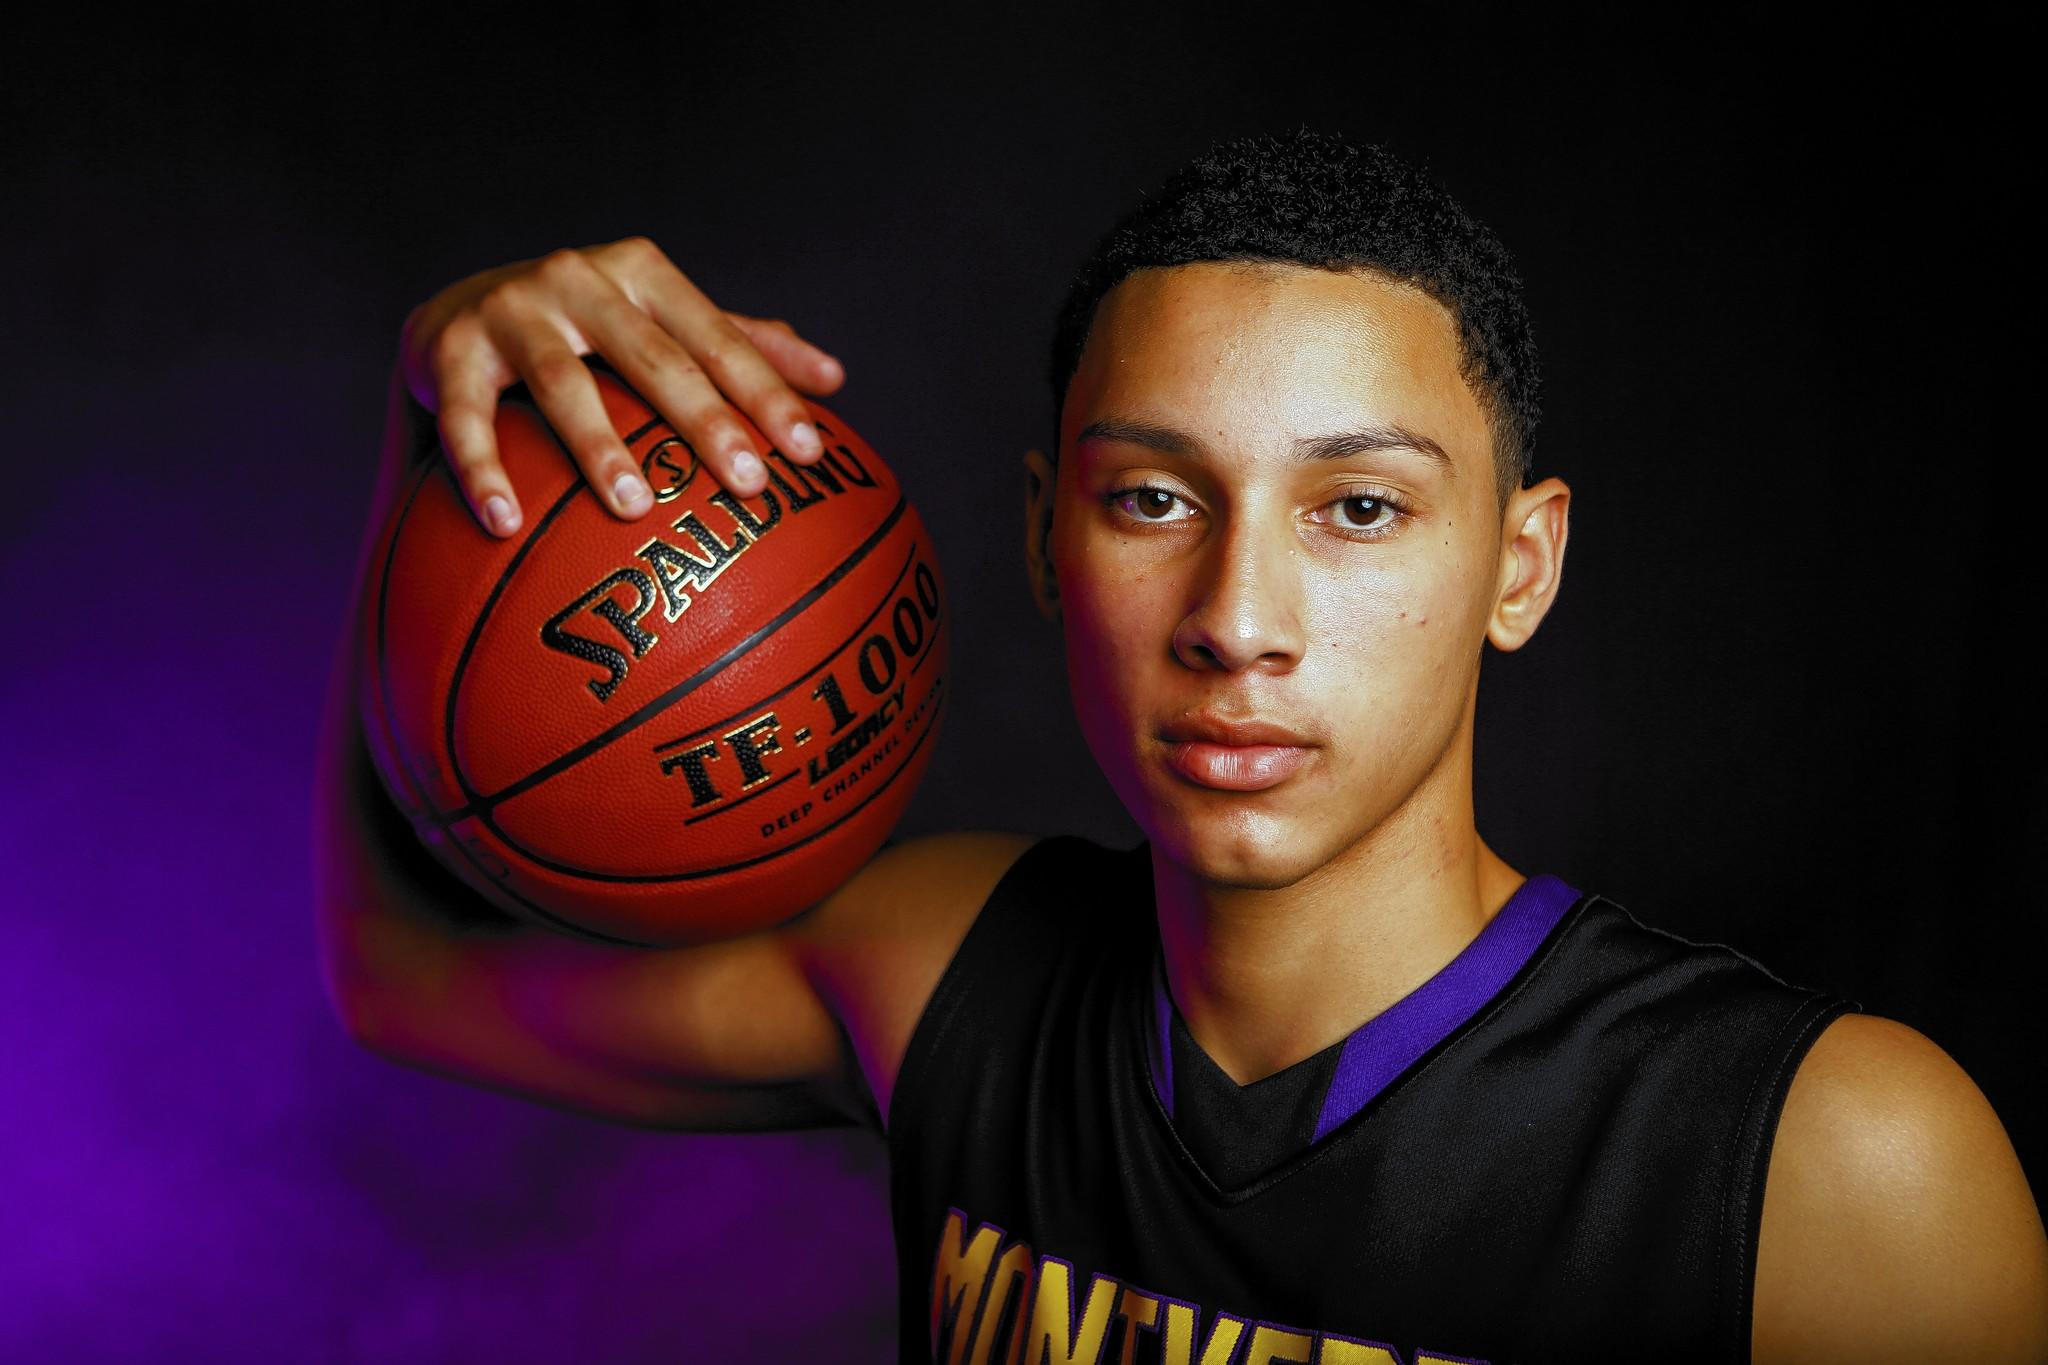 Ben Simmons of Montverde Academy poses for photos during Varsity Basketball Media Day at Lake Highland Prep in Orlando, FLA. on Sunday November 10, 2013. (Joshua C. Cruey/Orlando Sentinel)